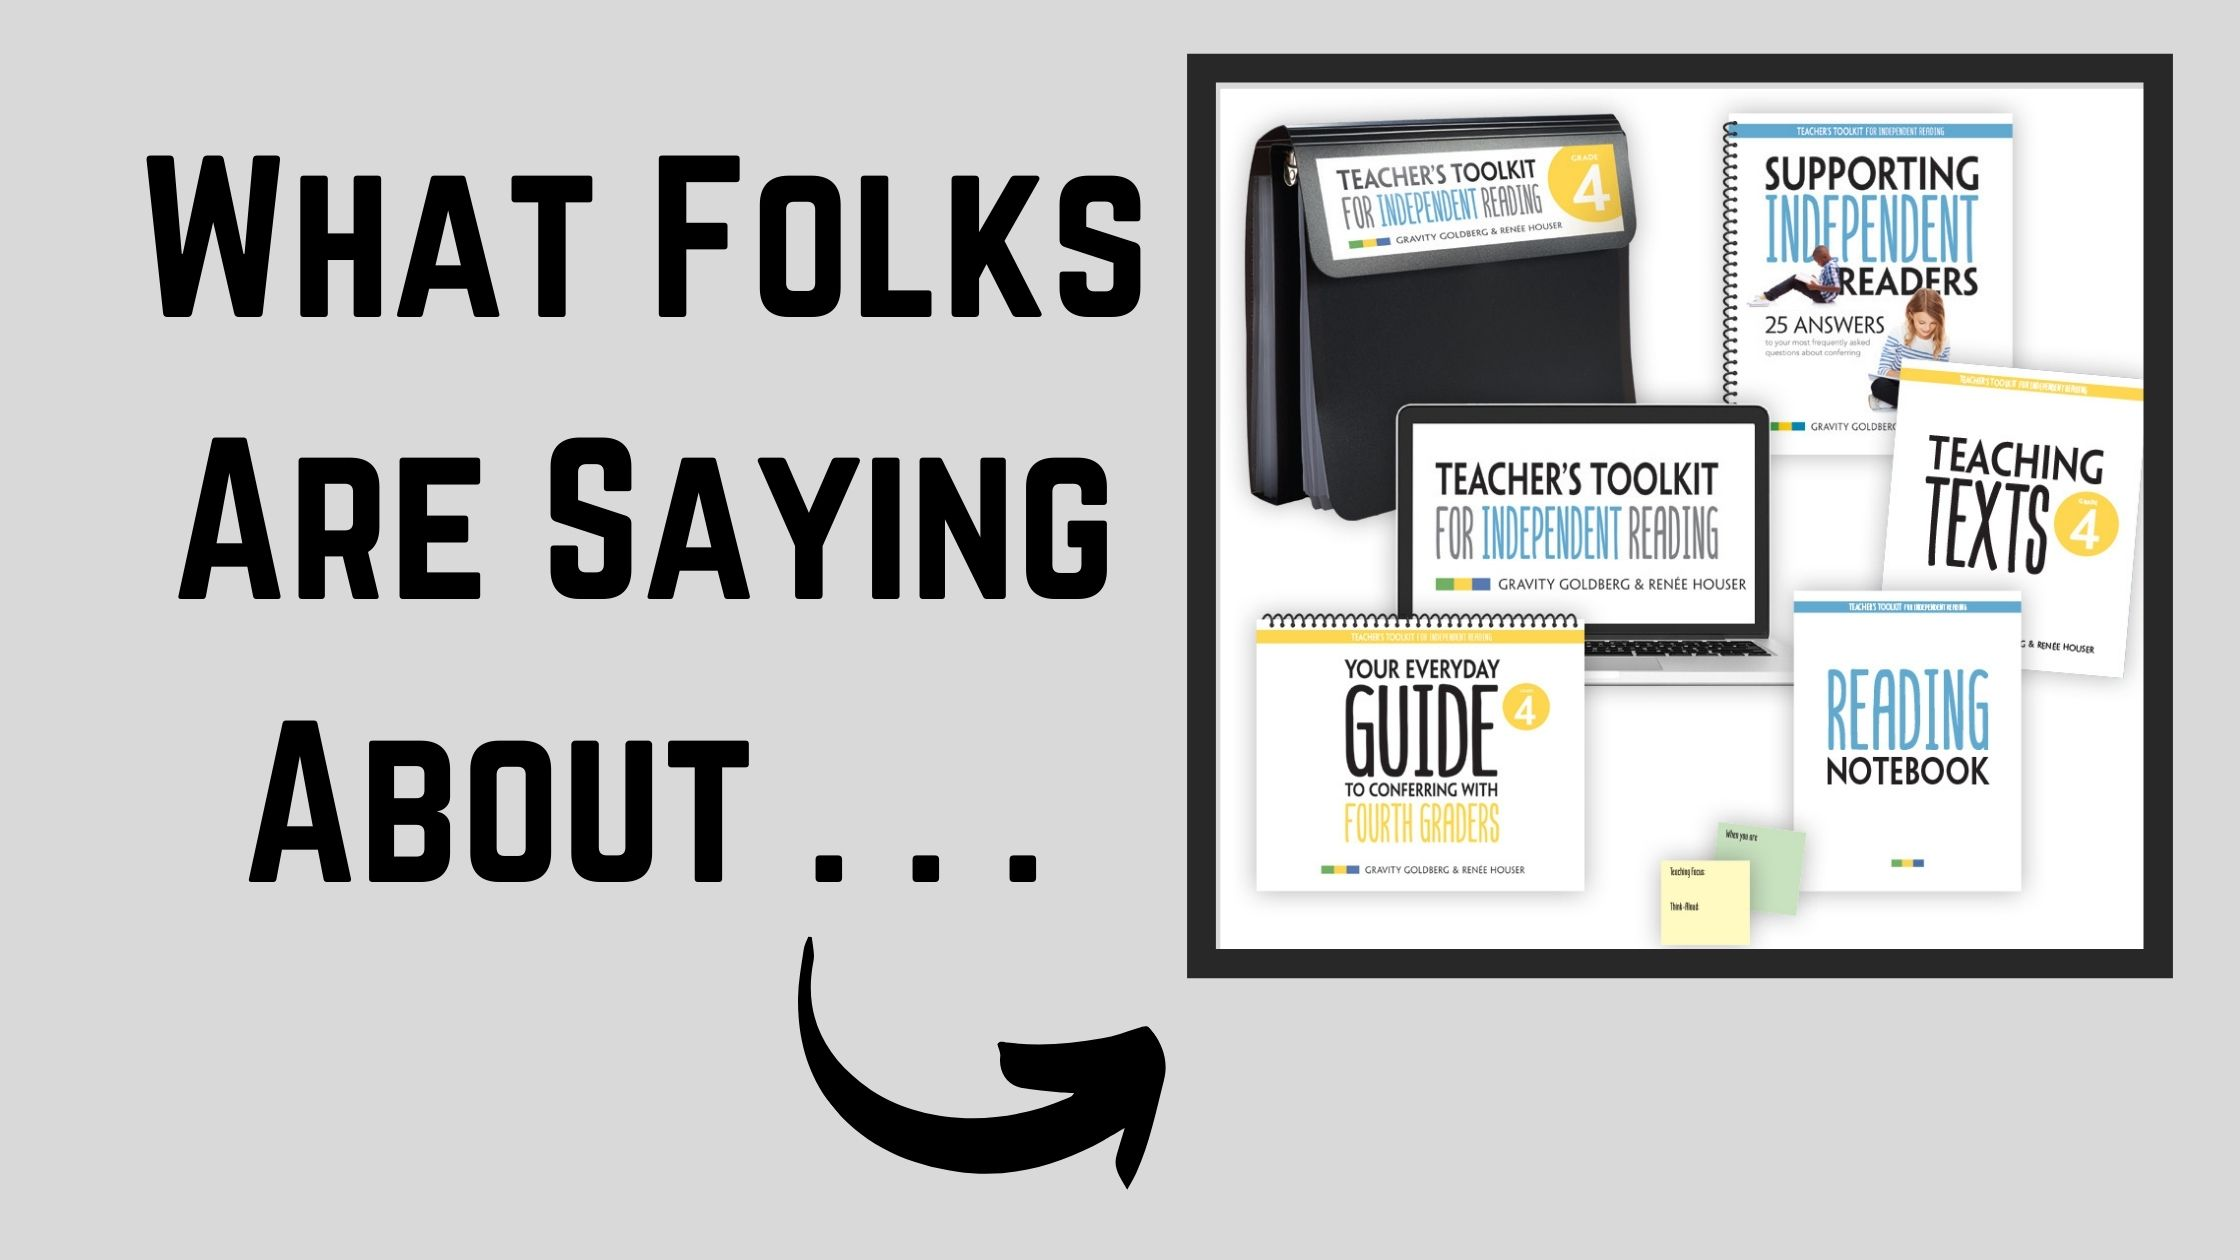 What Folks Are Saying About . . . Teacher's Toolkit for Independent Reading